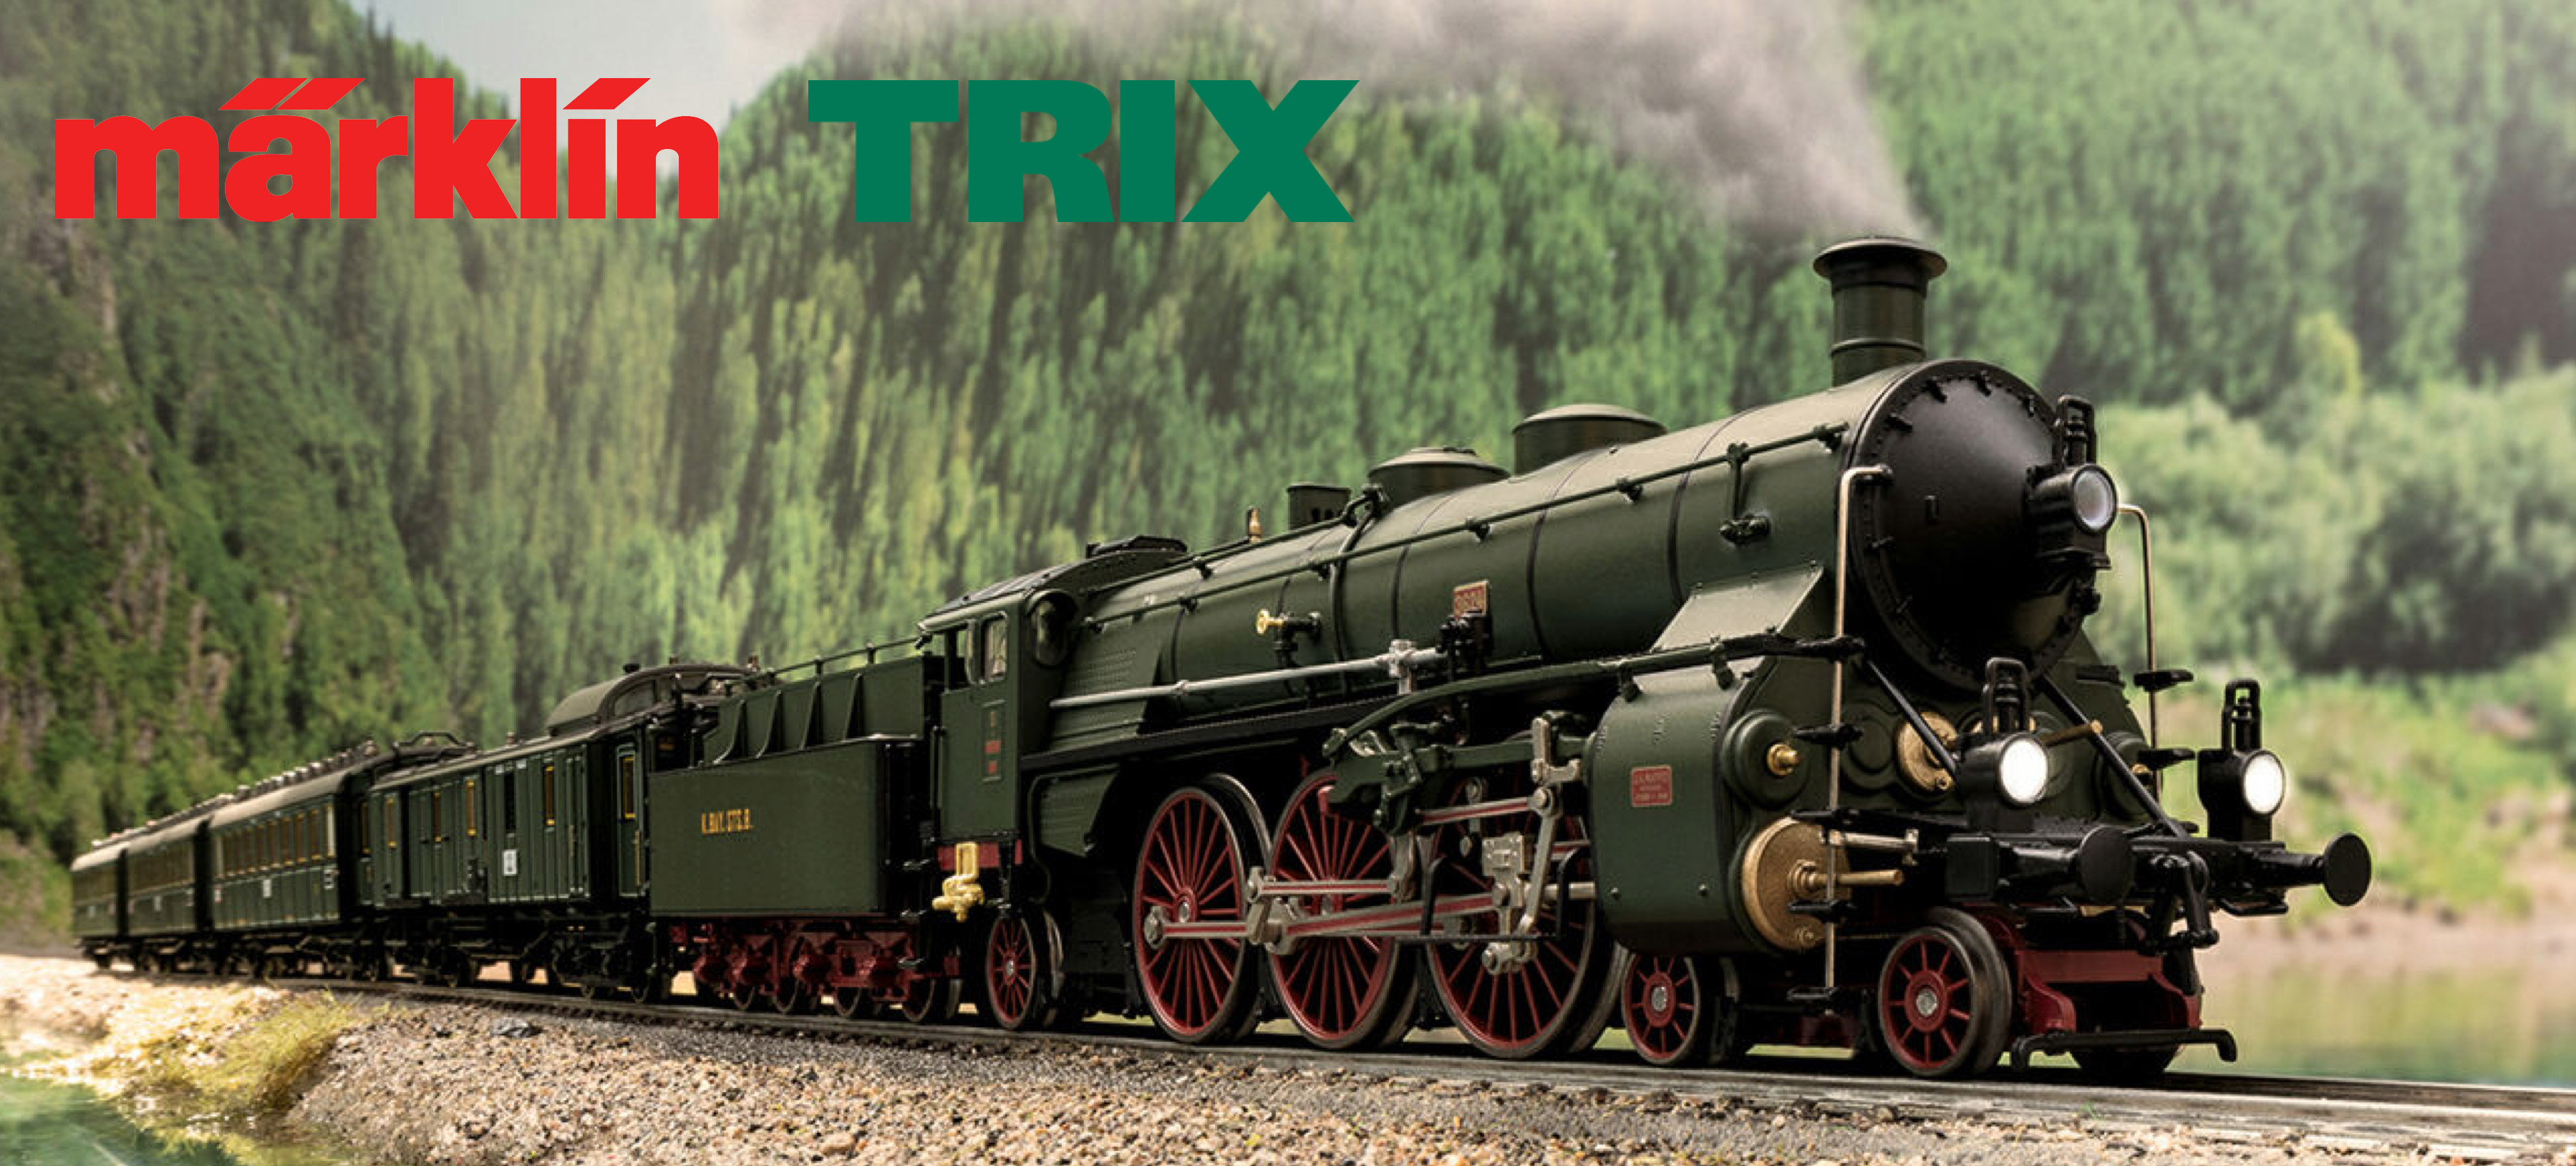 MARKLIN/TRIX Surprise Model for 2019 - HO scale S 3/6 Steam Locomotive The 'Hochhaxige' / 'High Stepper'